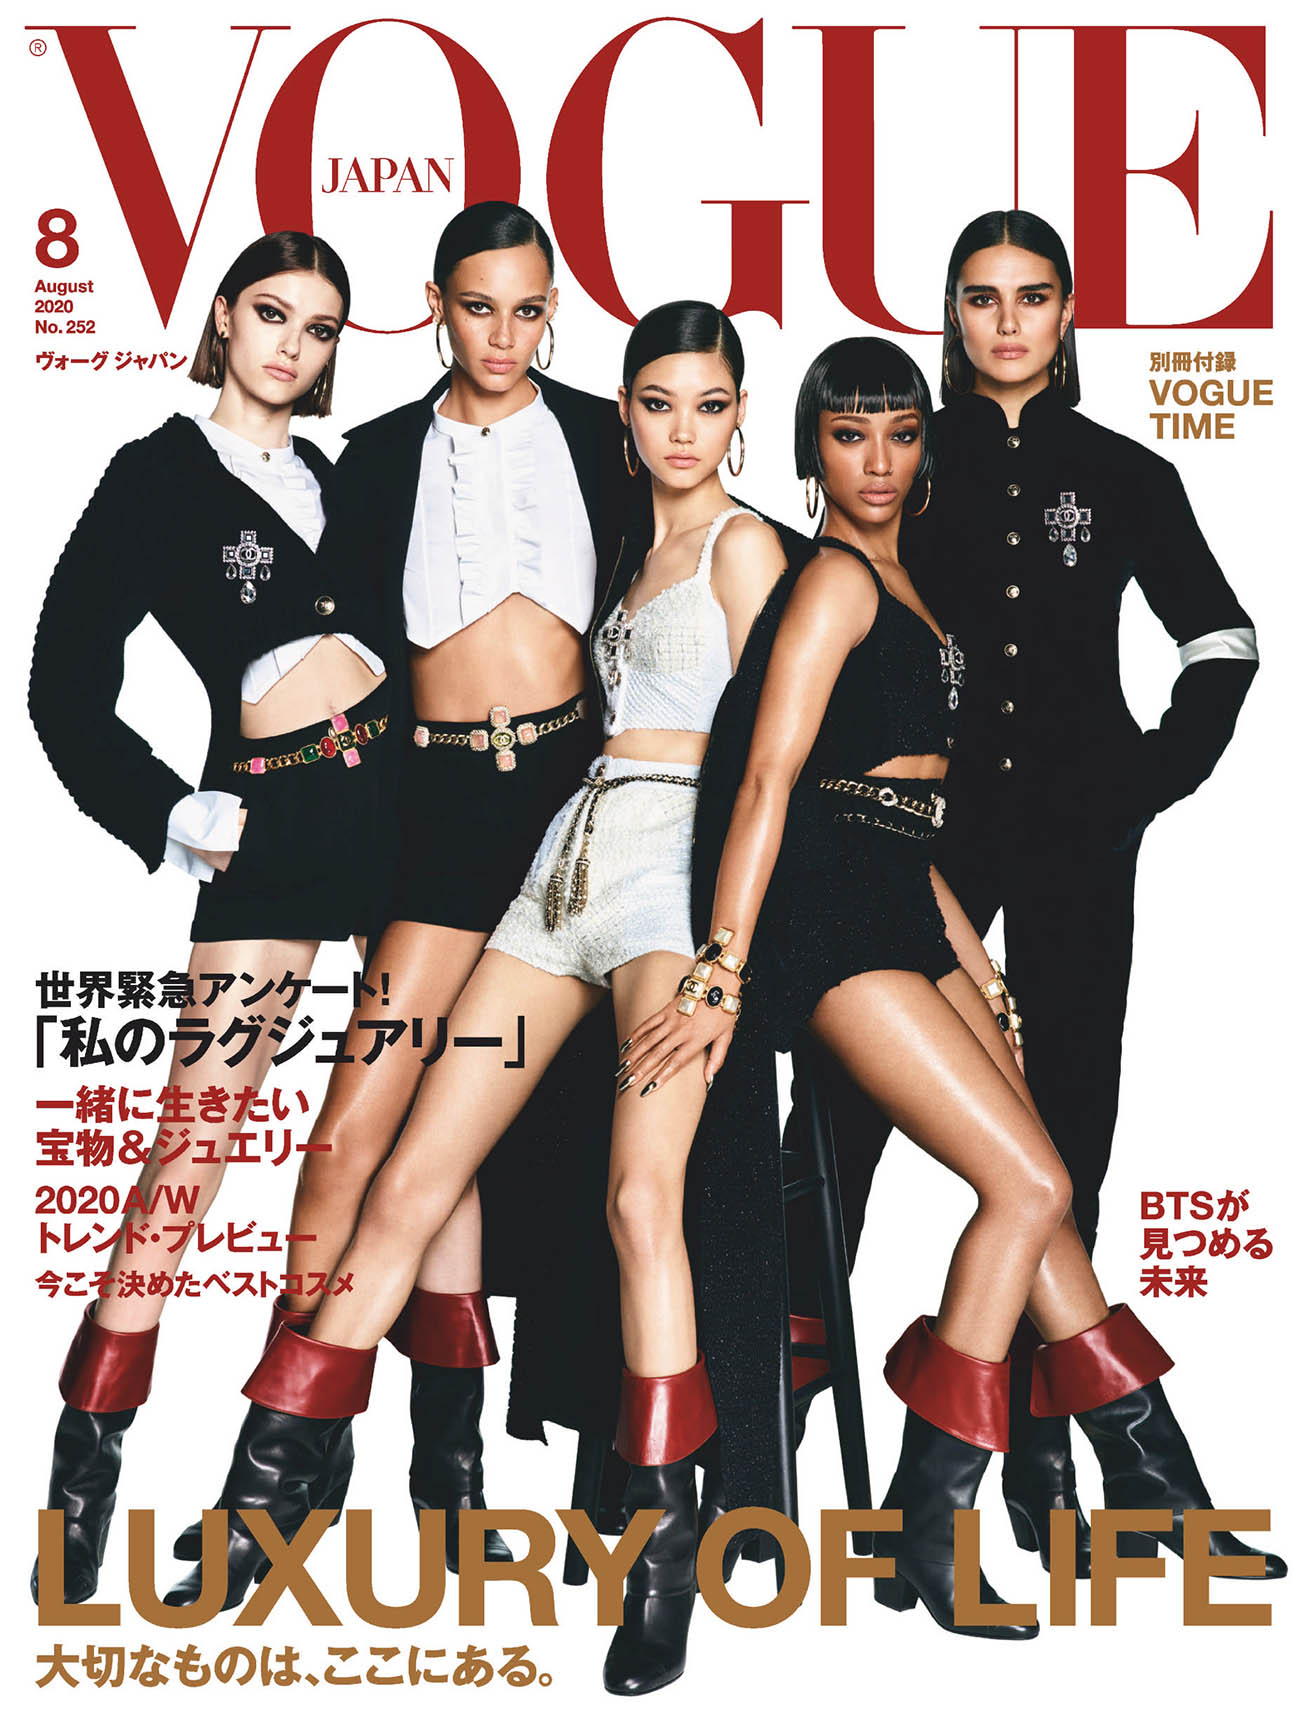 Vogue Japan August 2020 covers by Luigi & Iango